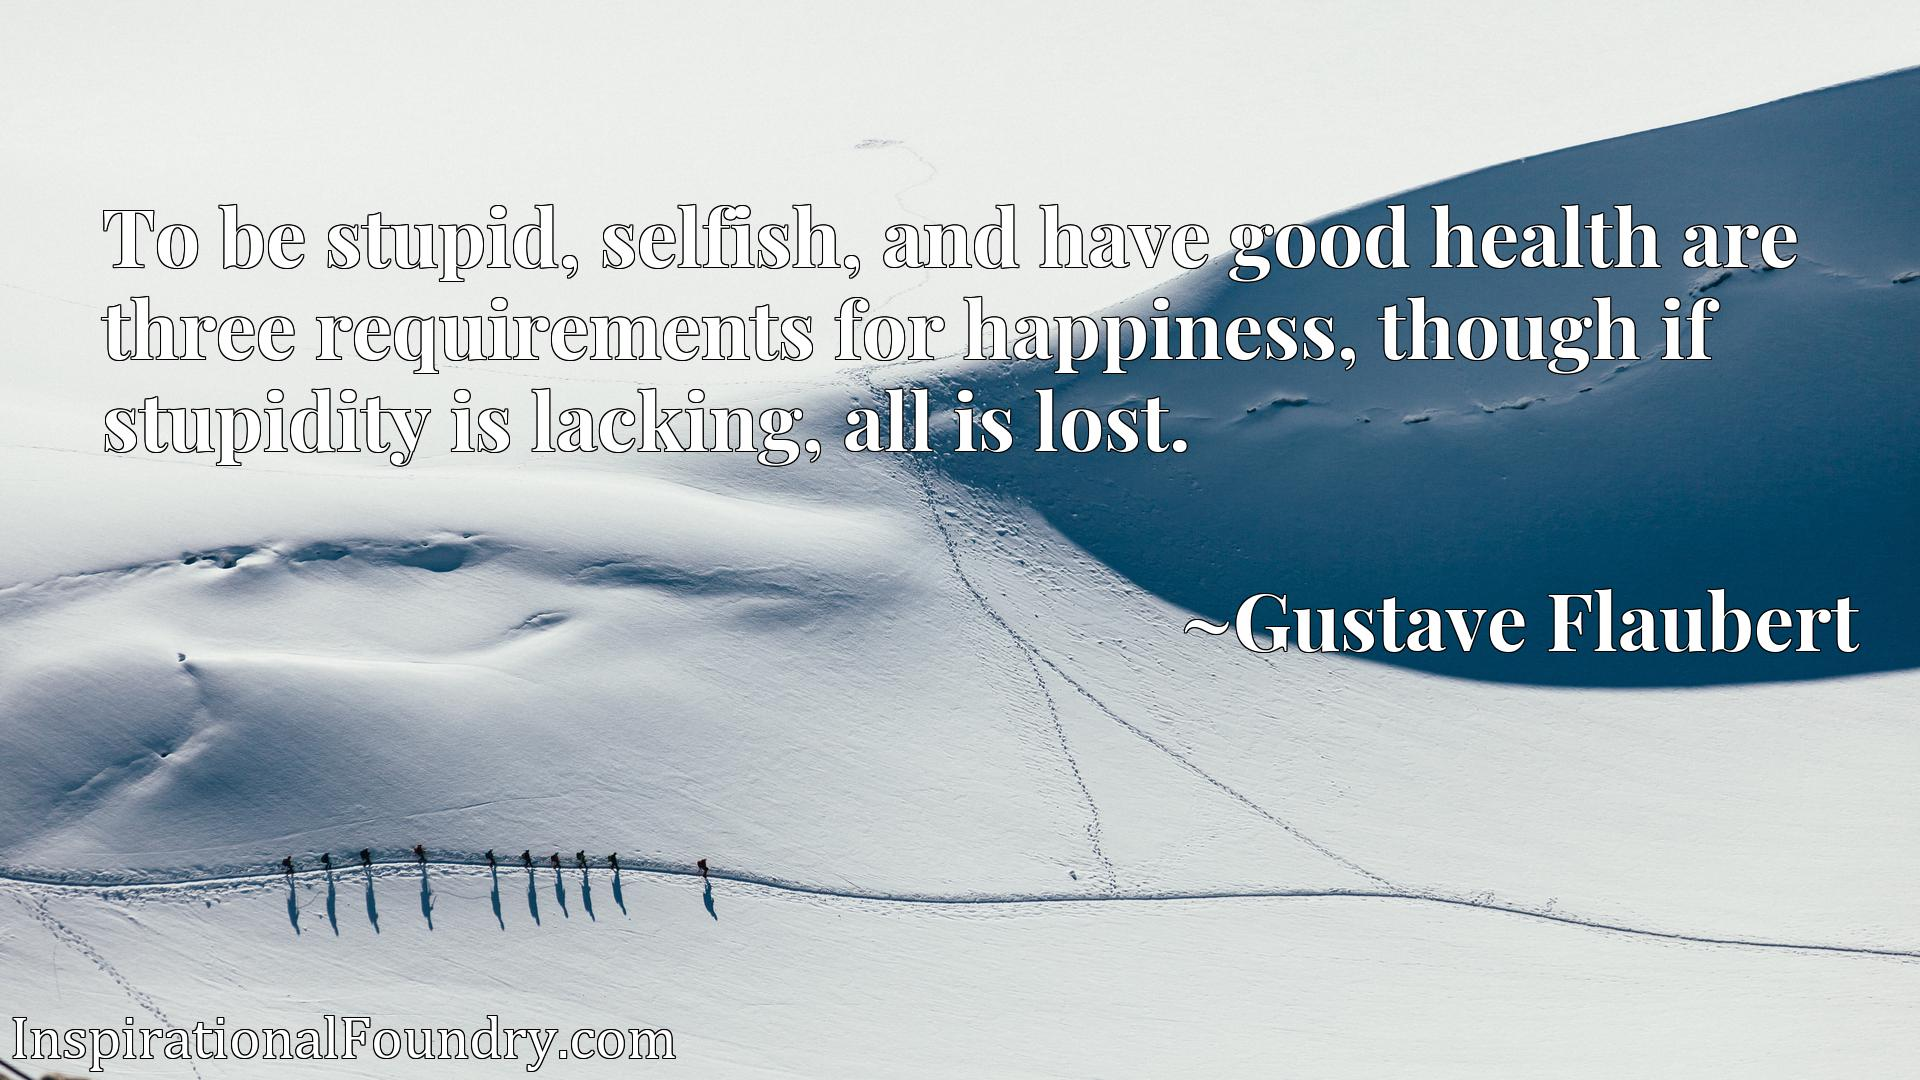 To be stupid, selfish, and have good health are three requirements for happiness, though if stupidity is lacking, all is lost.